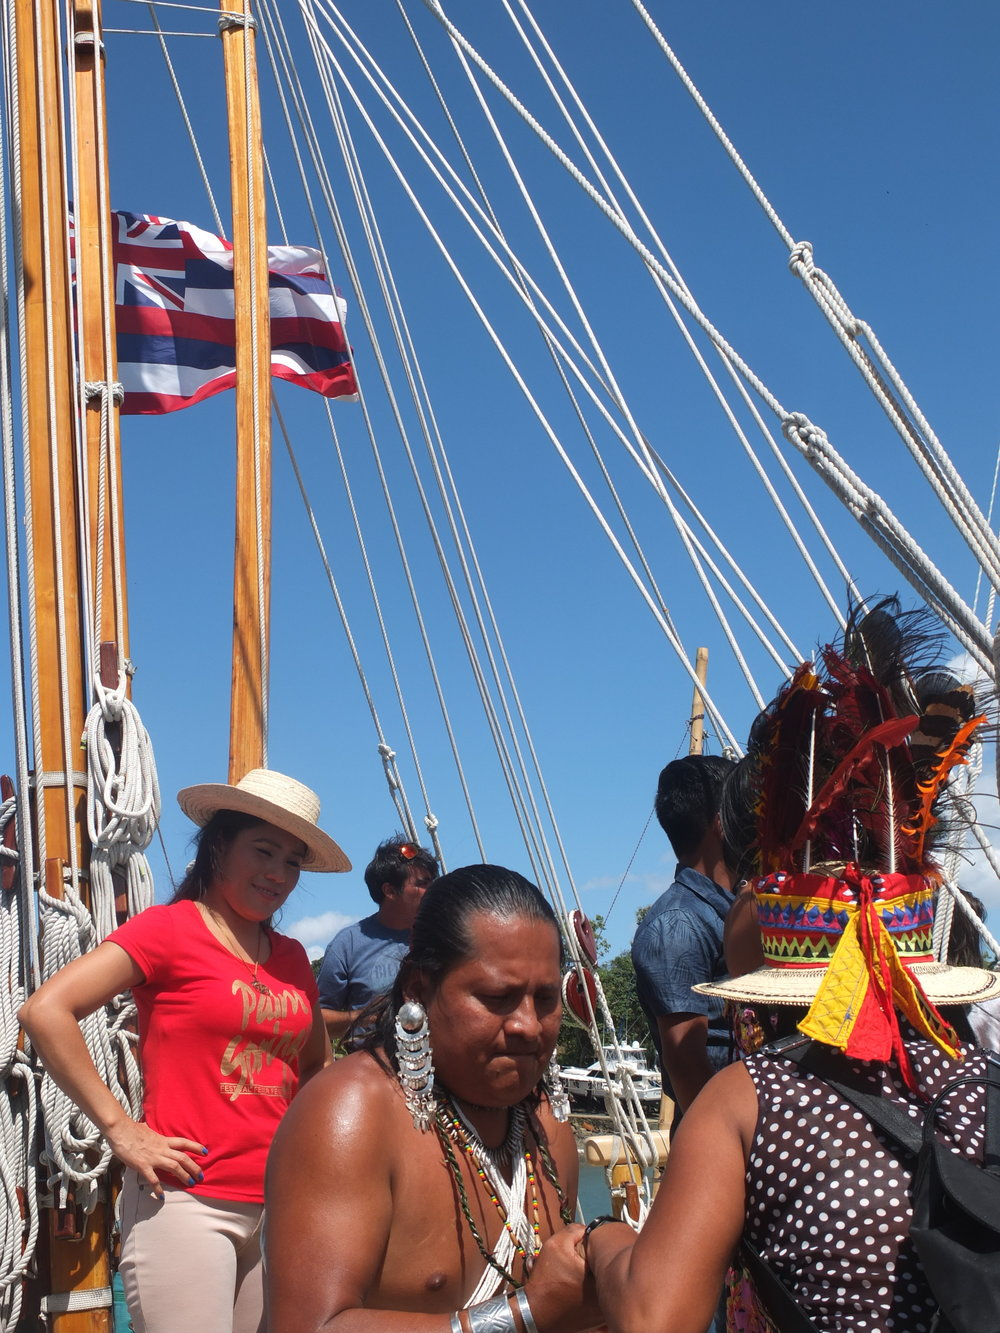 Indigenous Nations from around the world will gather in Ohau Hawaii in honor of Hokulea's Malama Honua world Wide voyage. Photo: January 2017, Panama Indigenous nations tour hokulea during its provisions stop and transoceanic path through the Panama canal